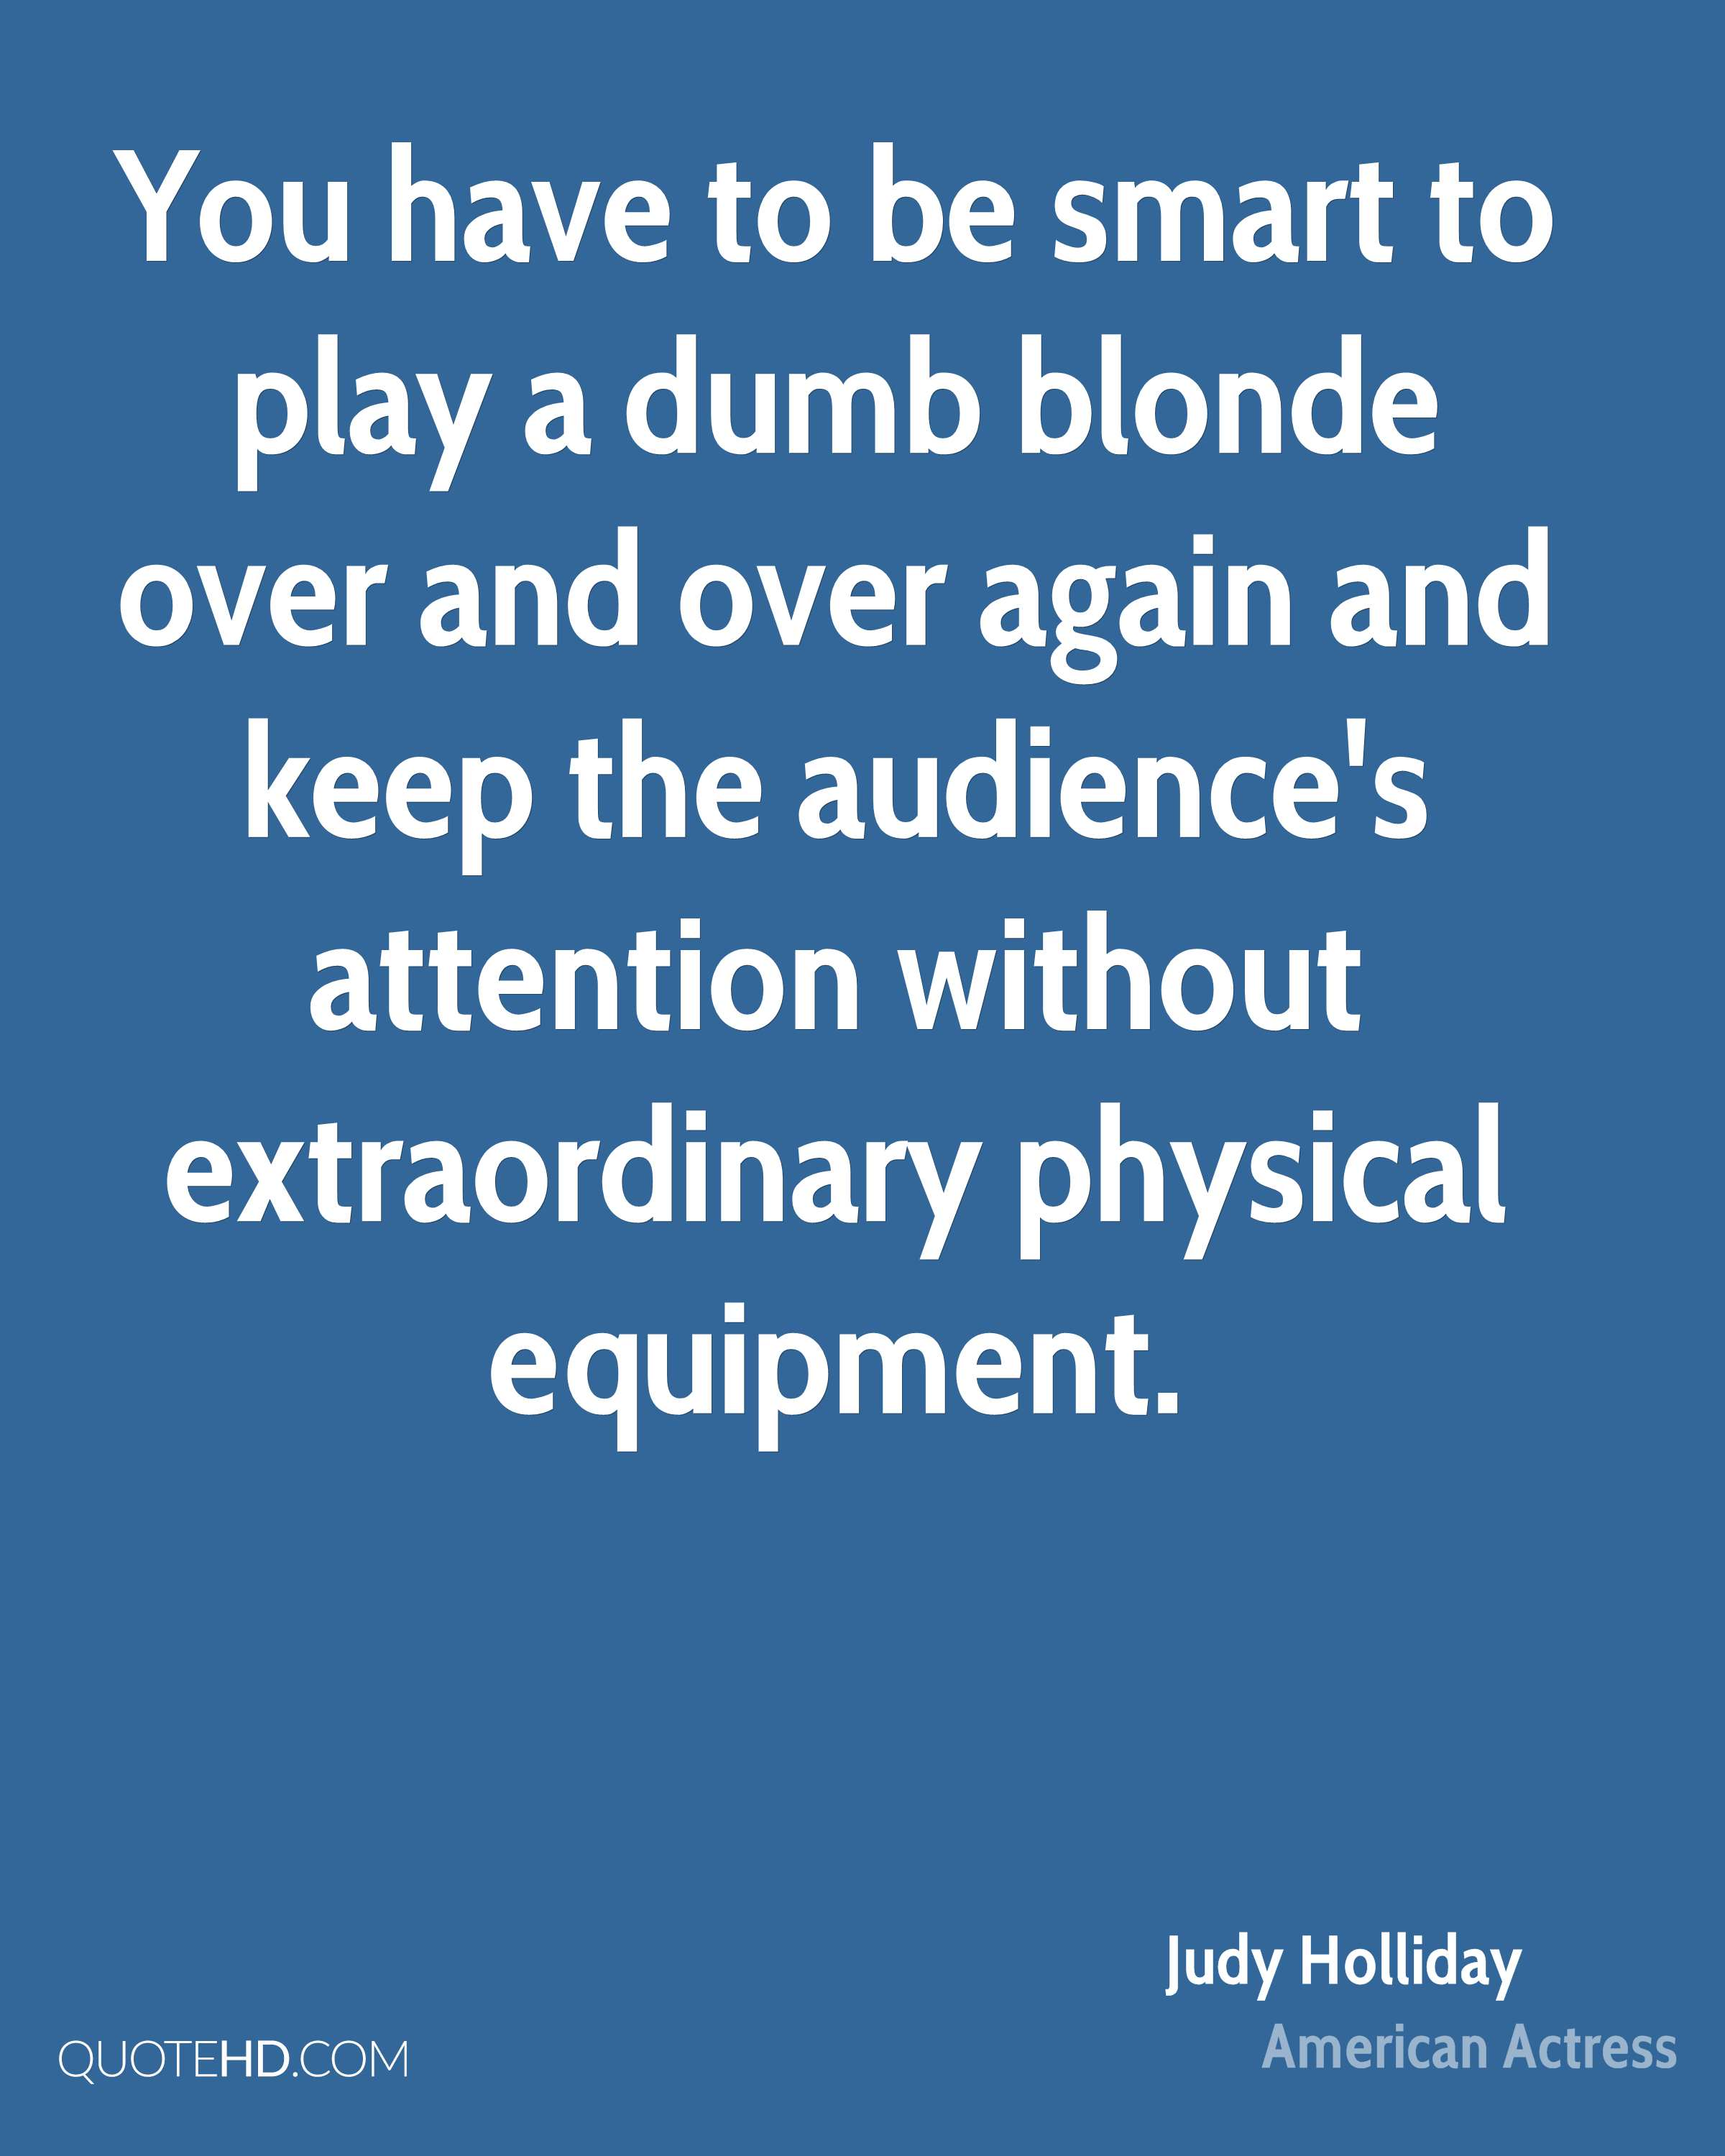 You have to be smart to play a dumb blonde over and over again and keep the audience's attention without extraordinary physical equipment.